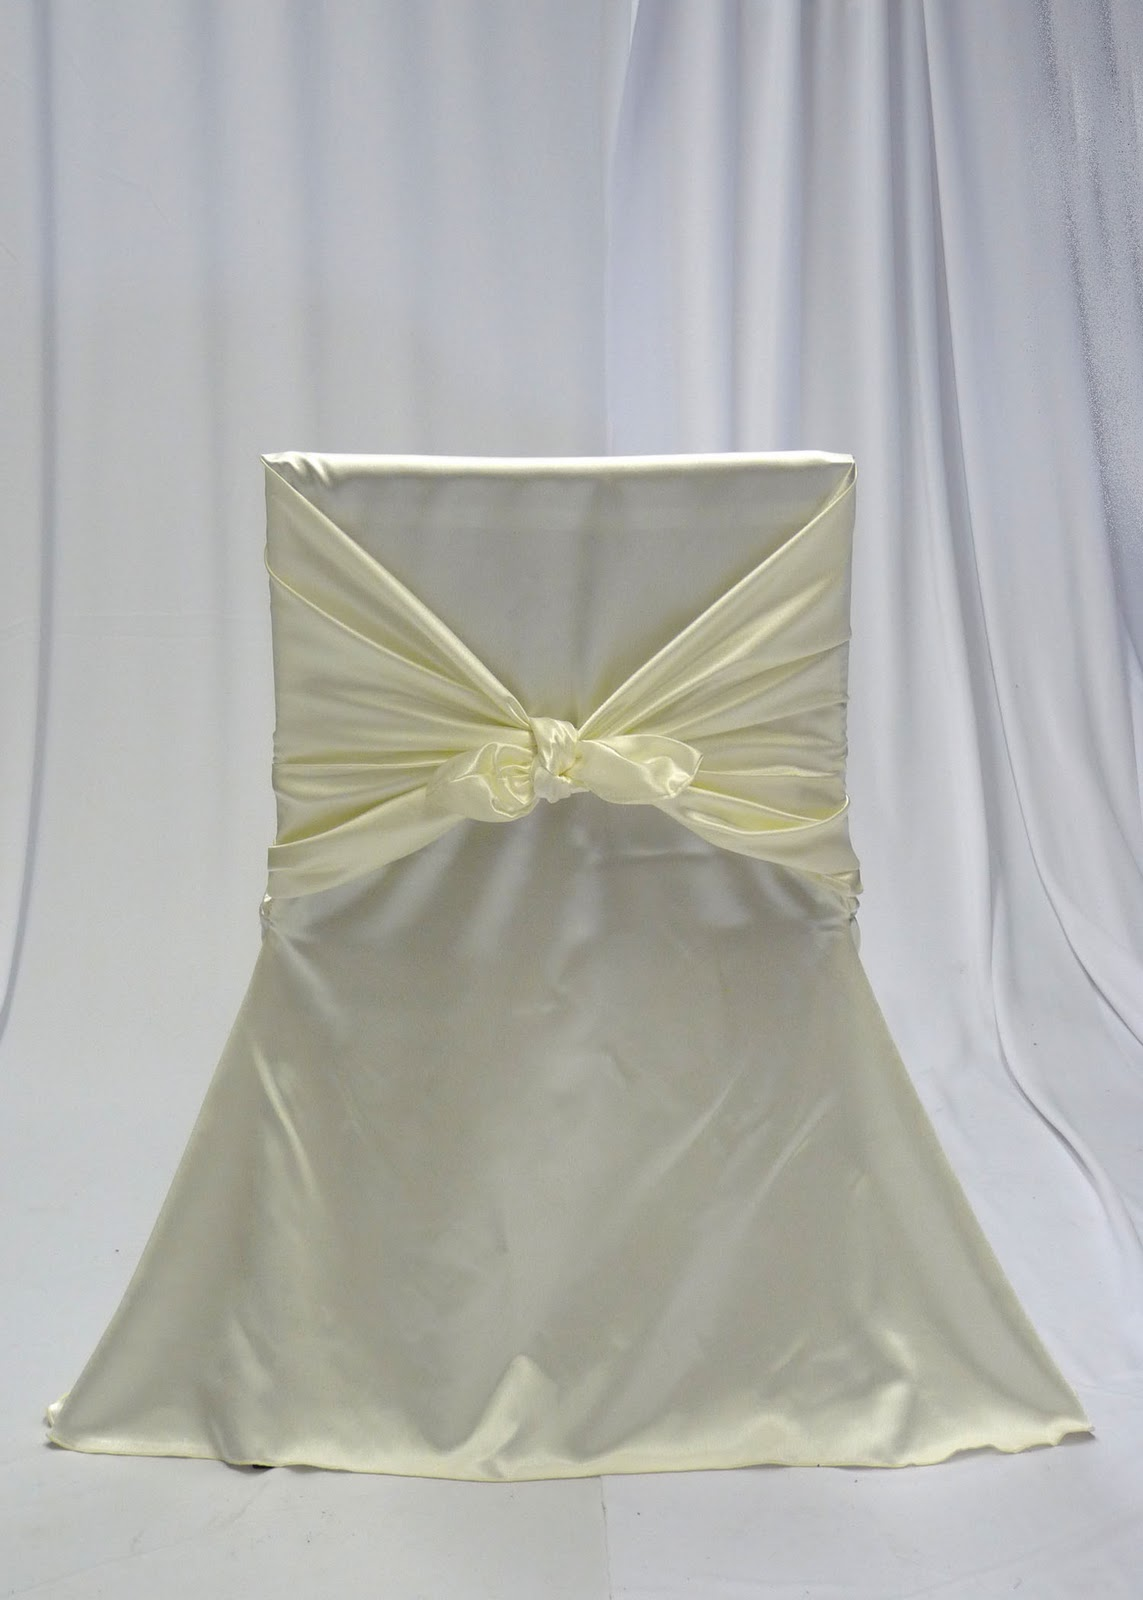 Chair Covers Rental Decor Rent Rent Chair Covers Toronto Chair Cover